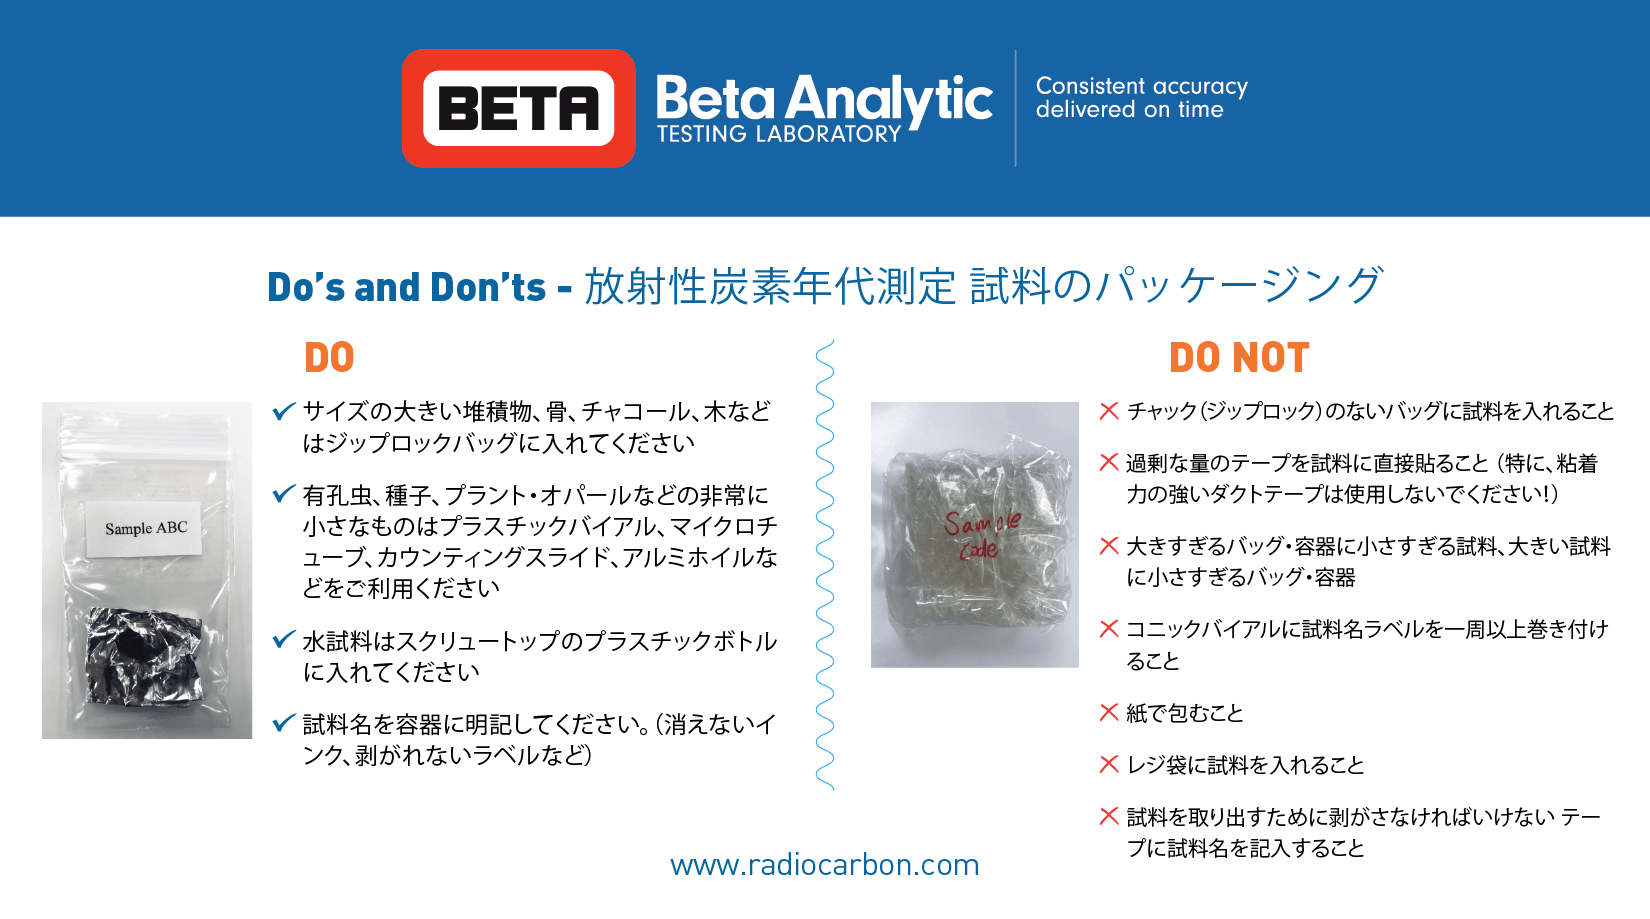 Beta Analytic carbon dating samples packing recommendation